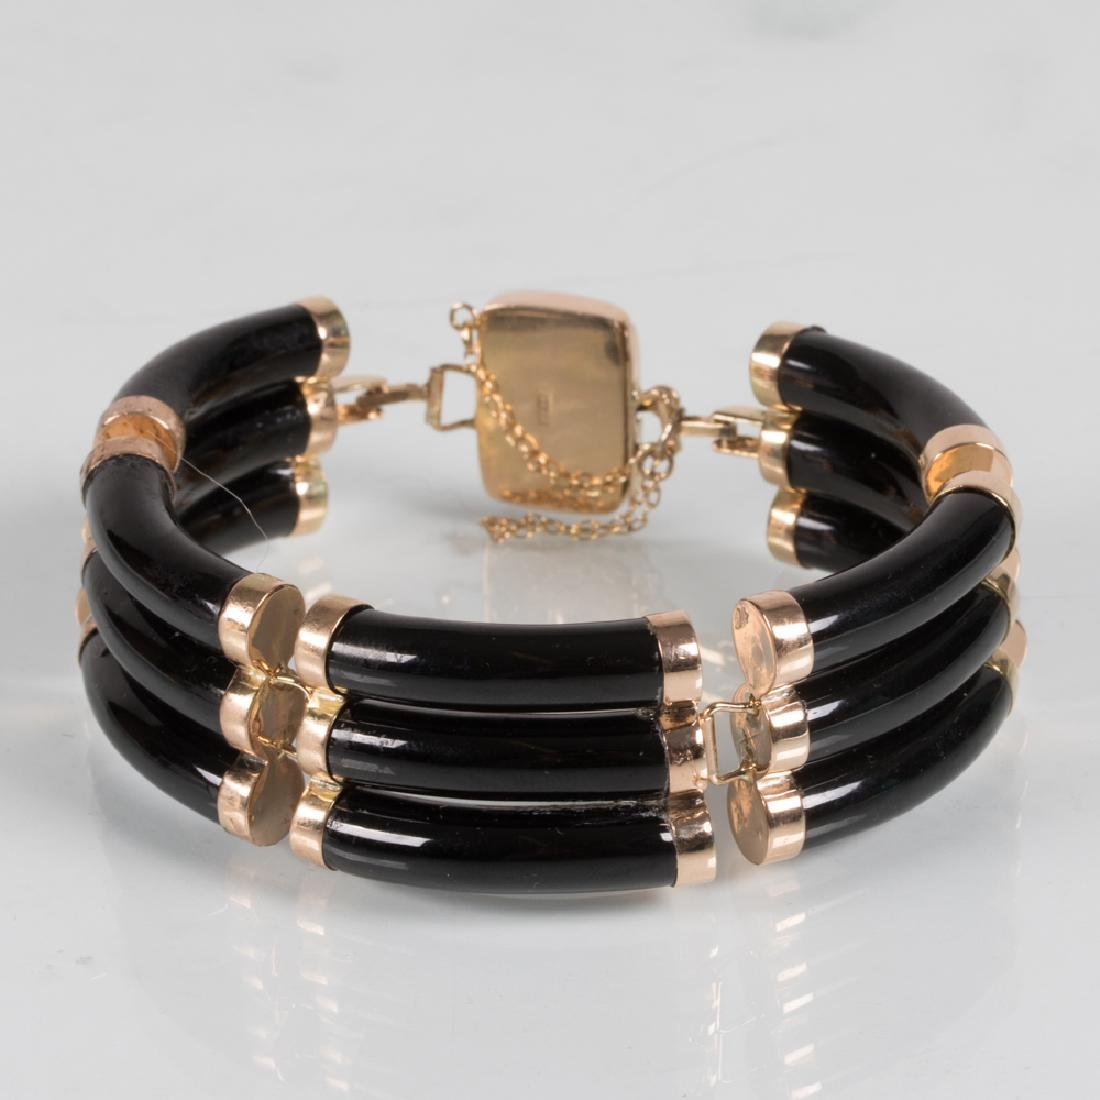 A 14kt. Yellow Gold and Obsidian Bracelet.